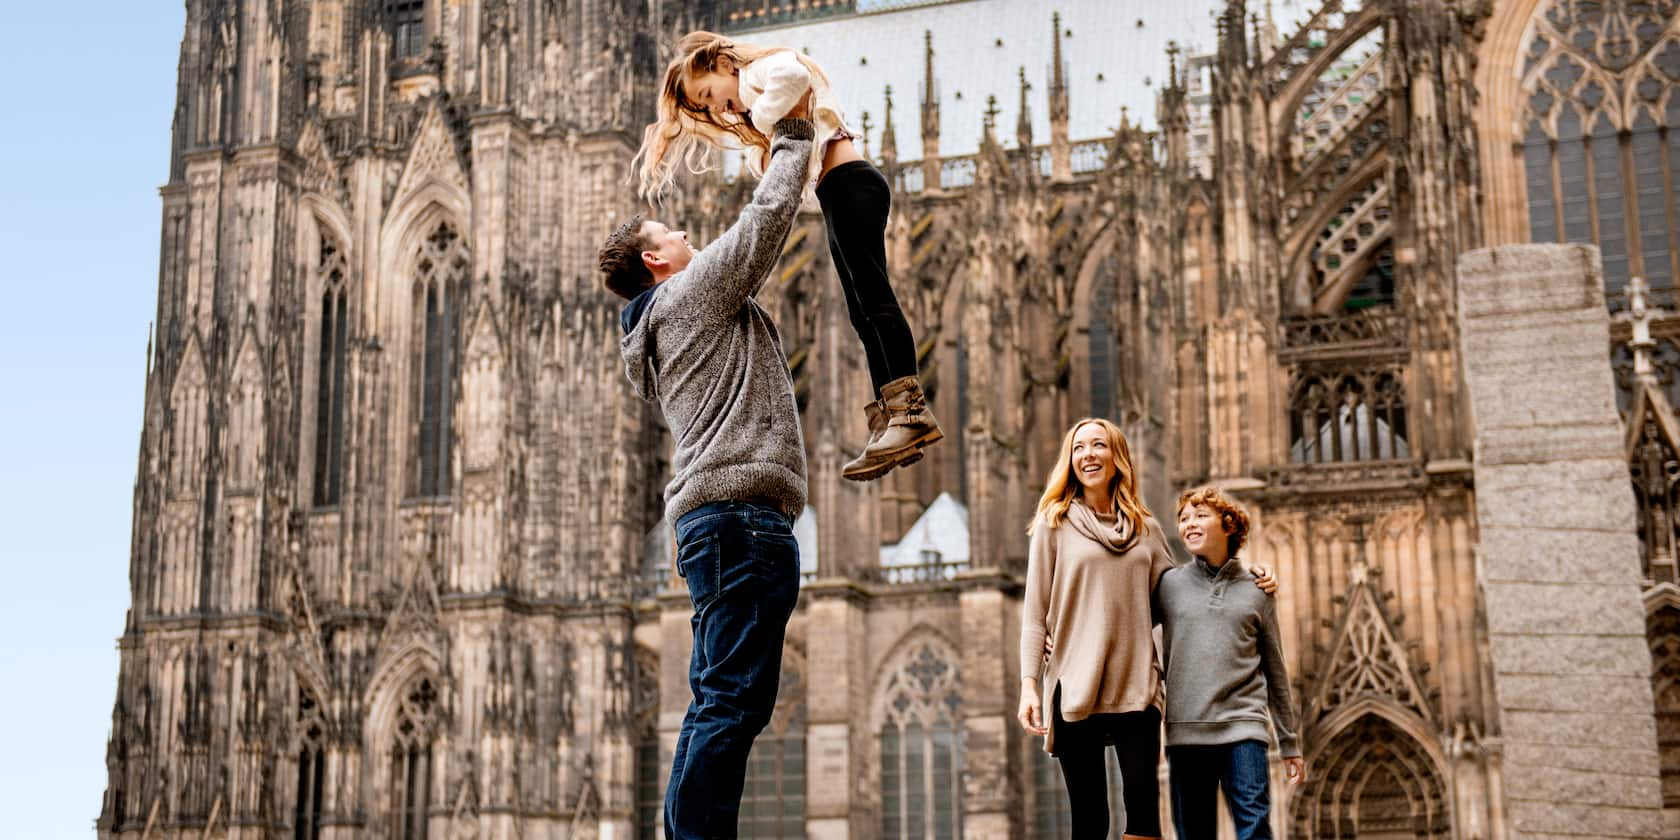 A father lifts his daughter up high in front of the Cologne Cathedral as his wife and son watch